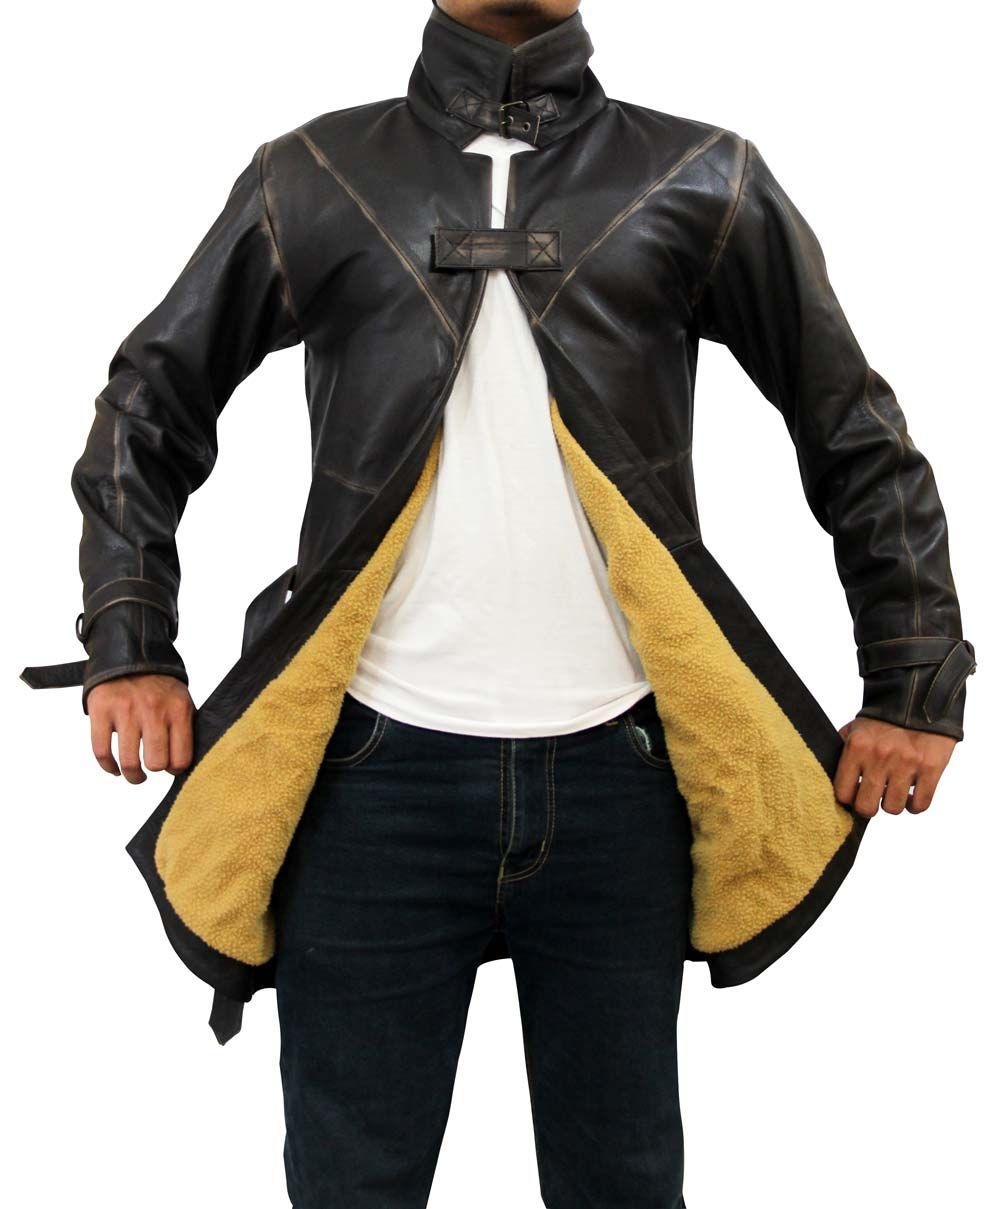 Leather jacket for dogs - The Watch Dogs Jacket Is Available In High Quality Cowhide Leather Stand Up